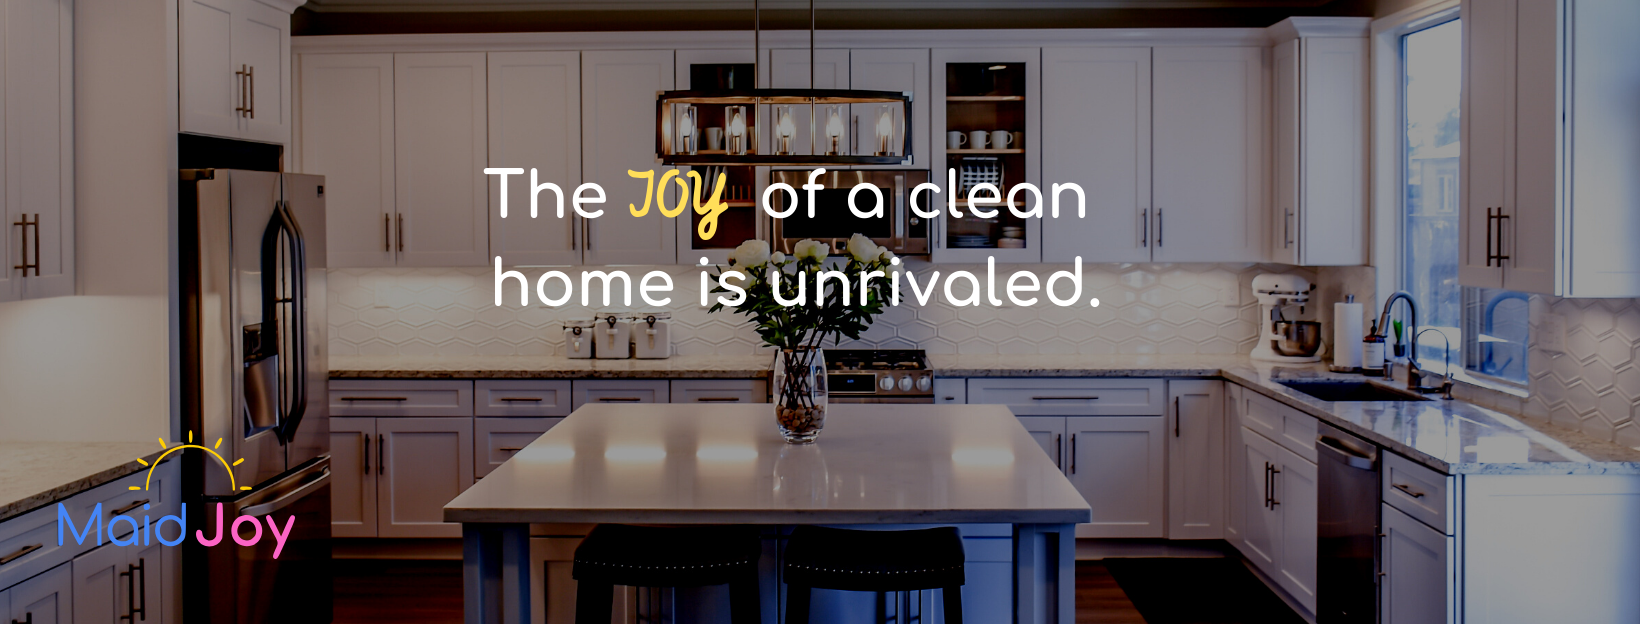 MaidJoy Falls Church Condo and Apartment Cleaning Service.